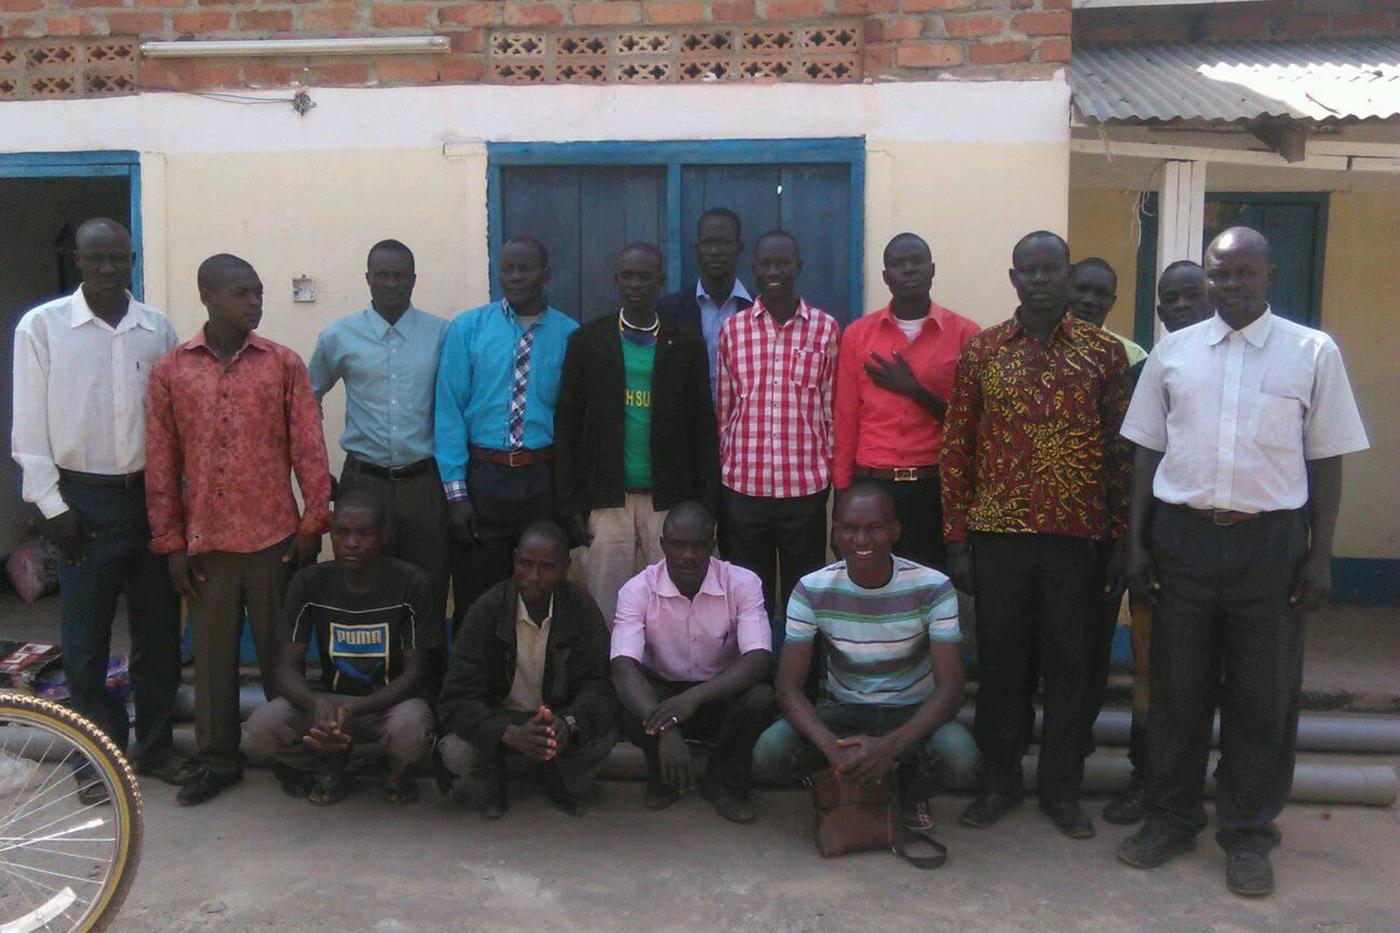 Students arrive at the Concordia Lutheran Institute for the Holy Ministry in South Sudan